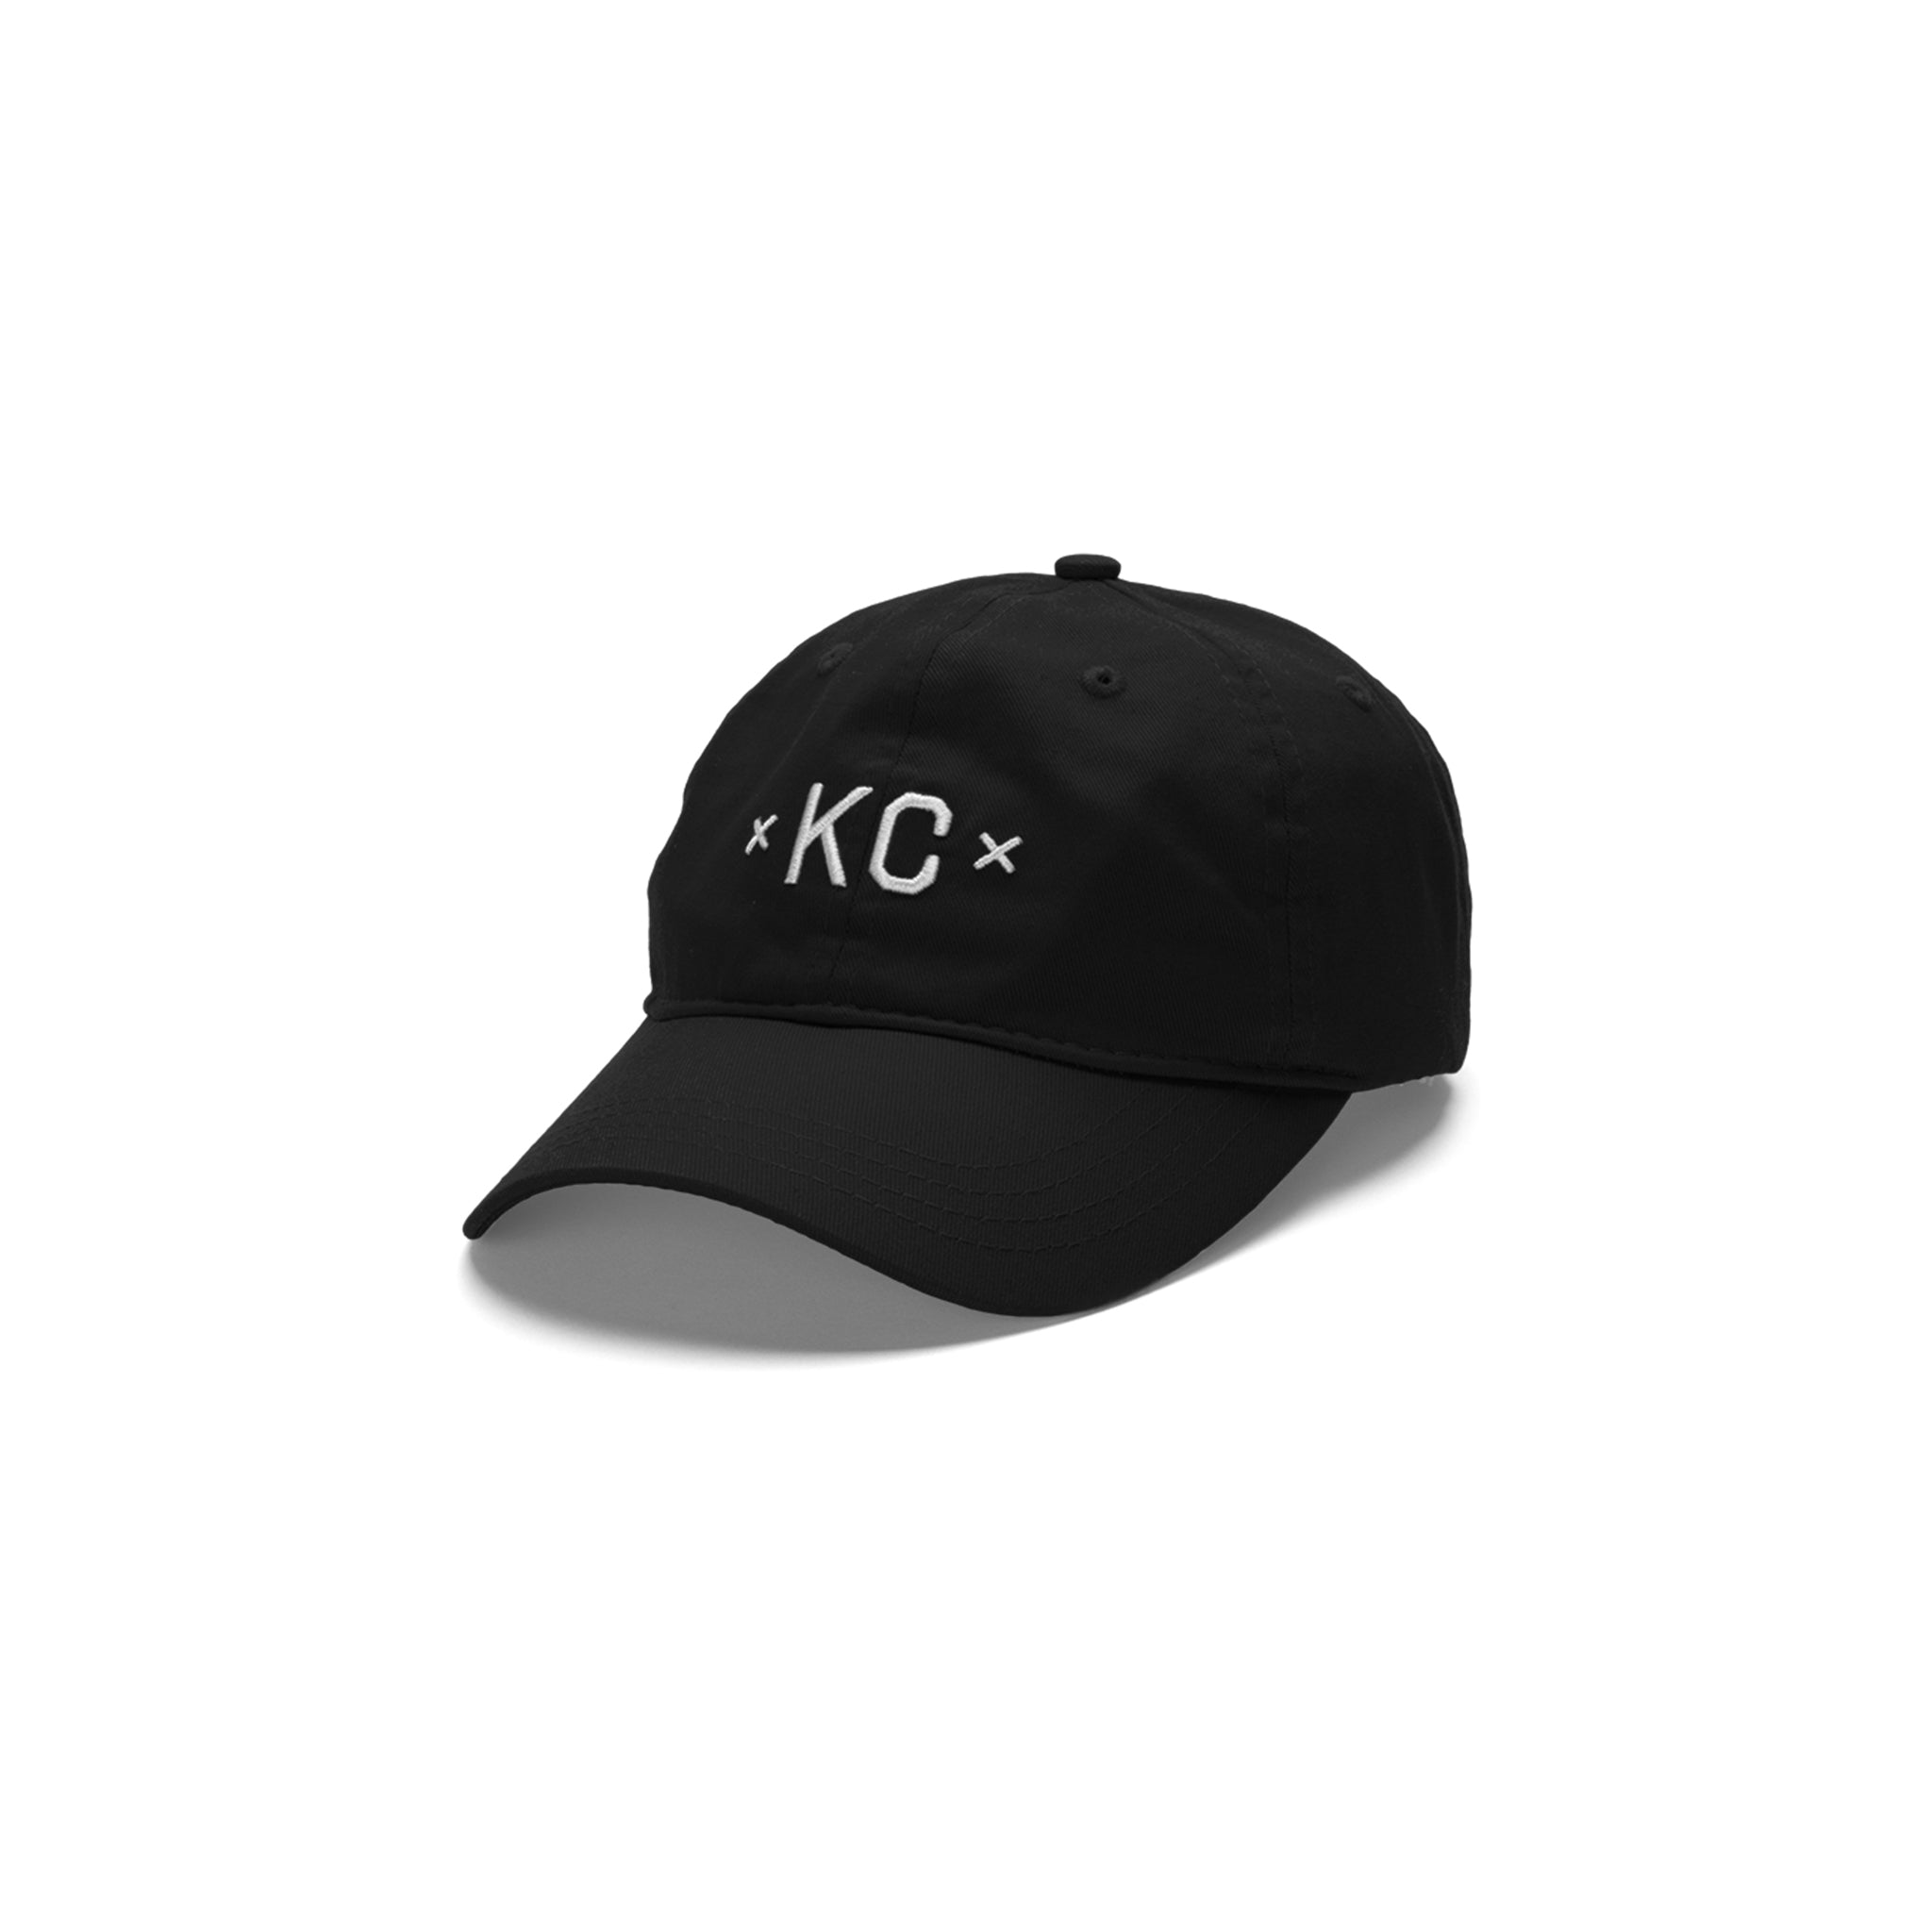 Signature KC Dad Hat Black